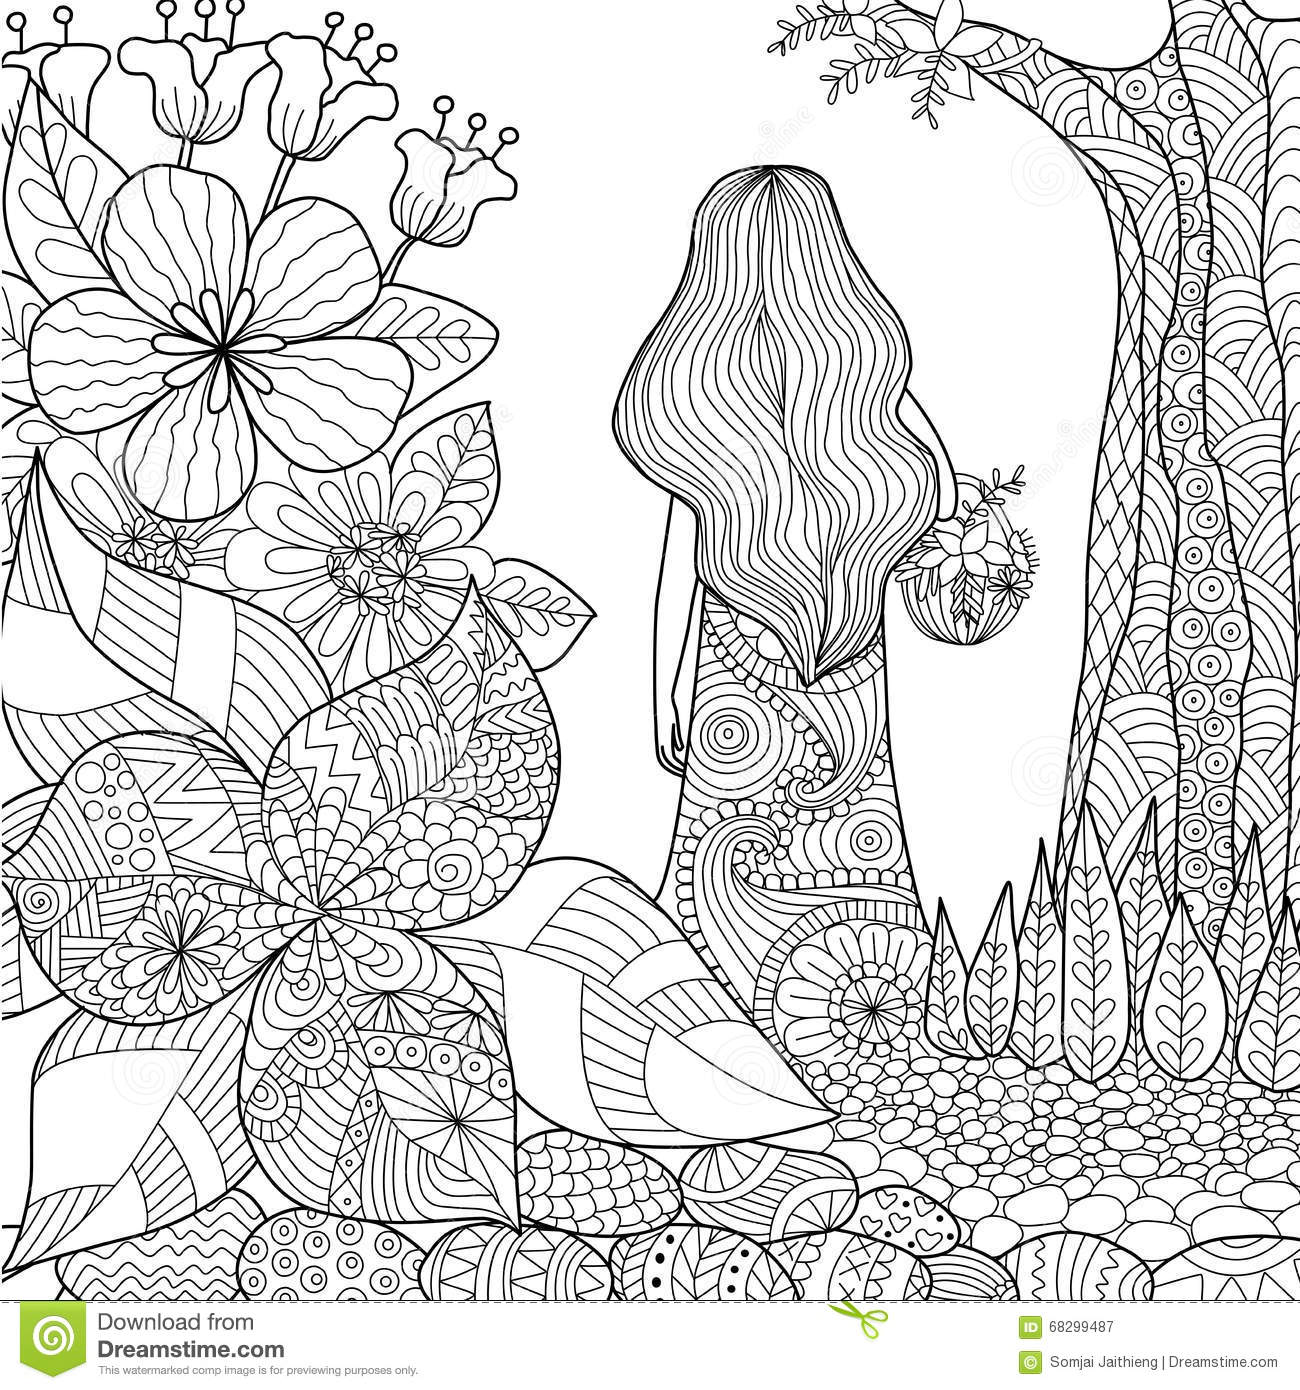 Flowers coloring book beautiful pictures from the garden of nature - Girl In The Garden